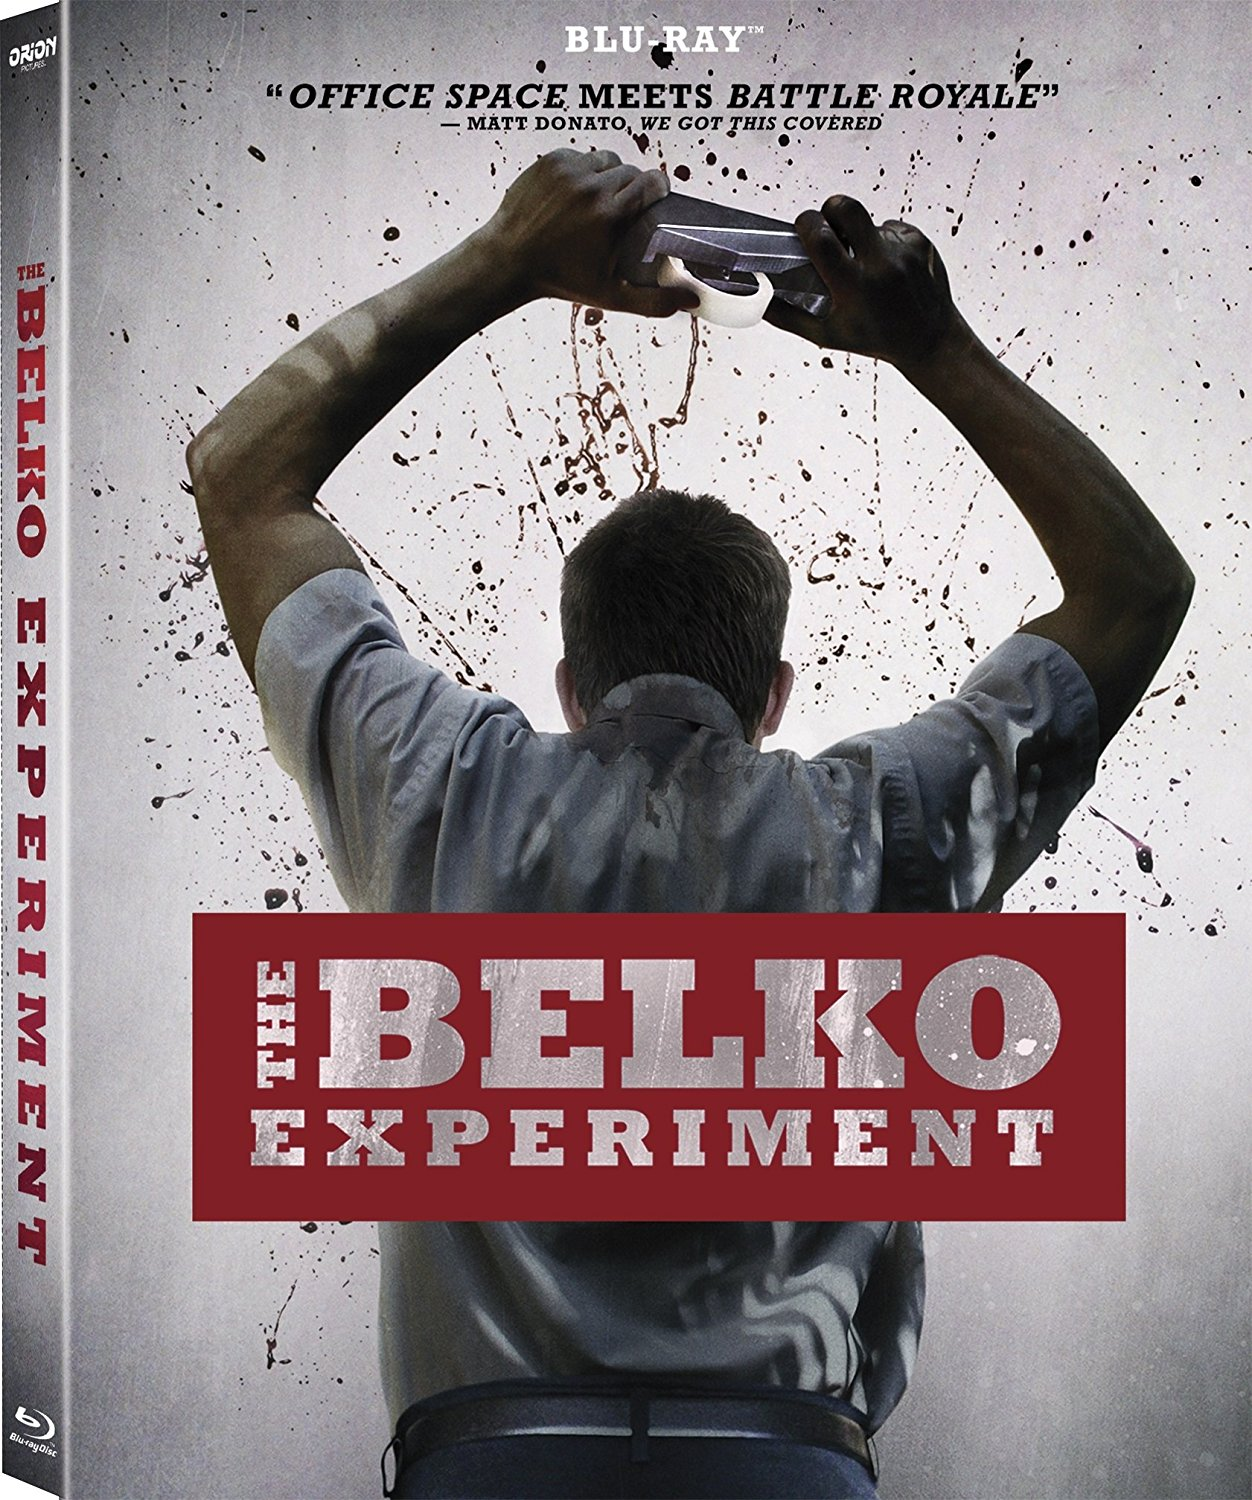 belko experiment blu ray - The Belko Experiment Blu-ray - Exclusive Interview with Greg McLean